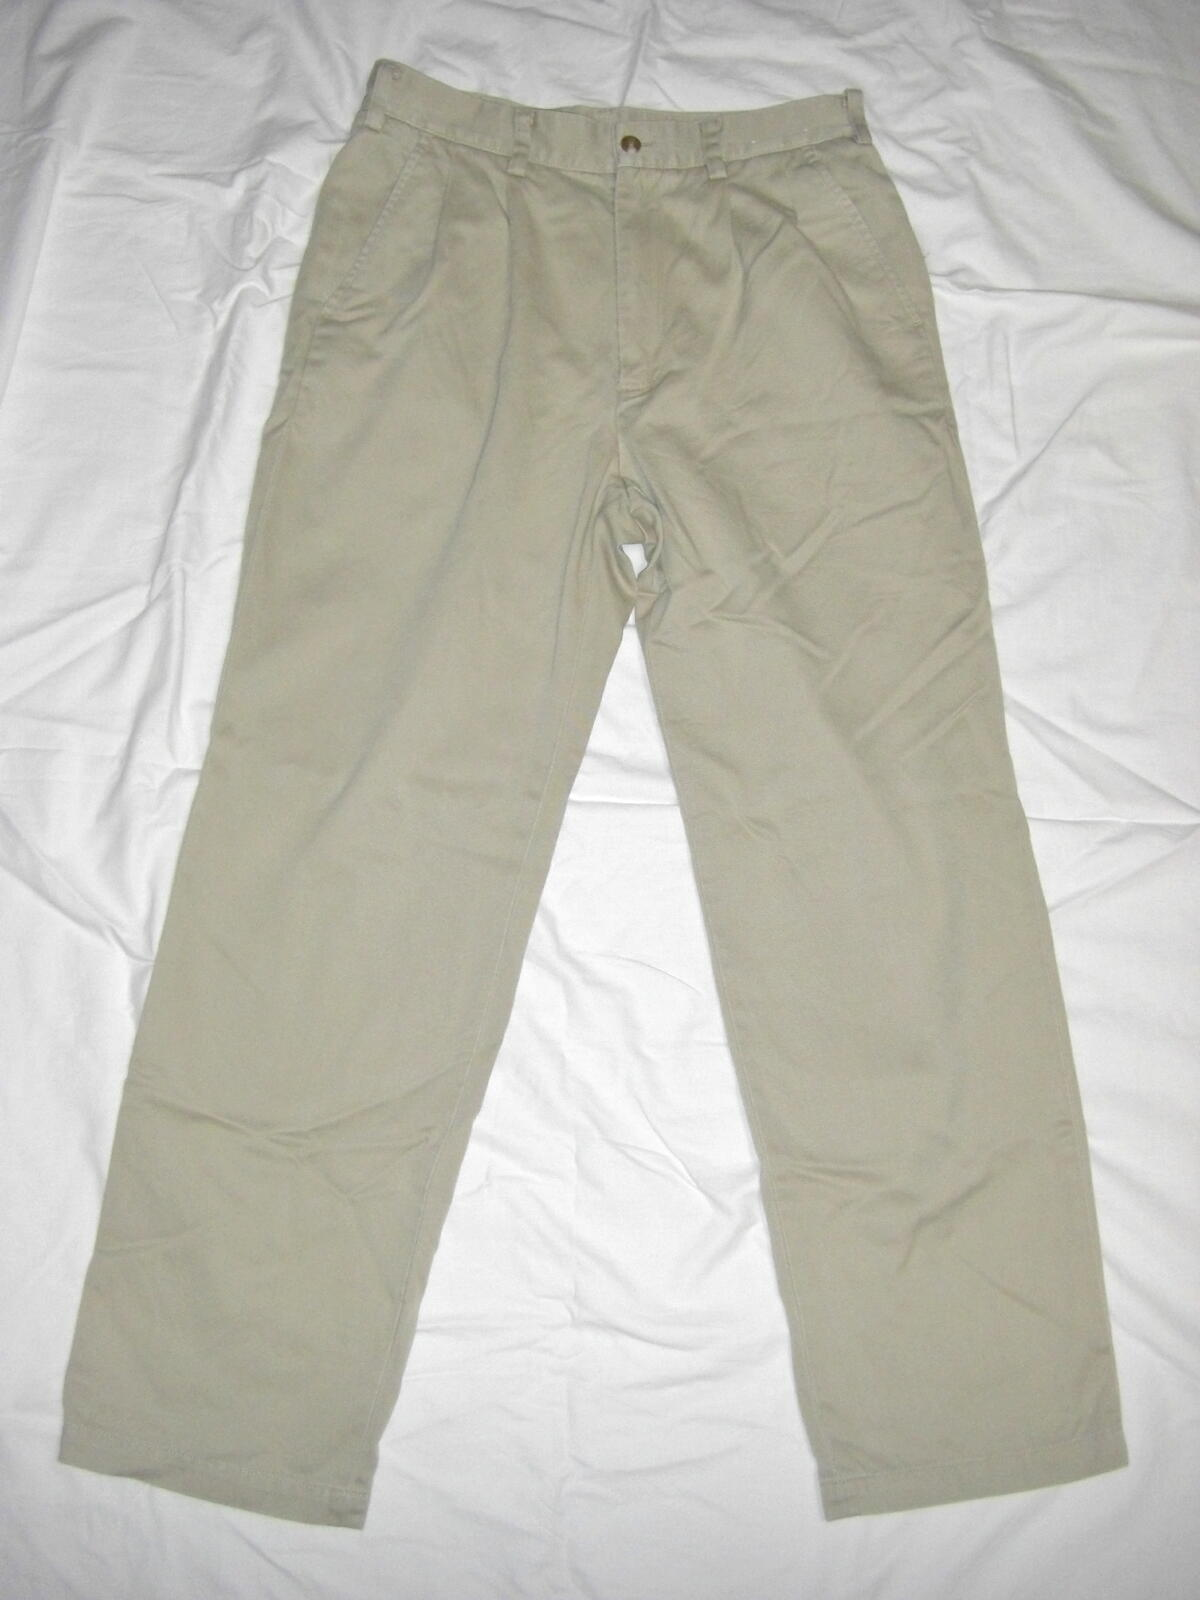 http://upload.wikimedia.org/wikipedia/commons/3/3e/Chino_pants.jpg